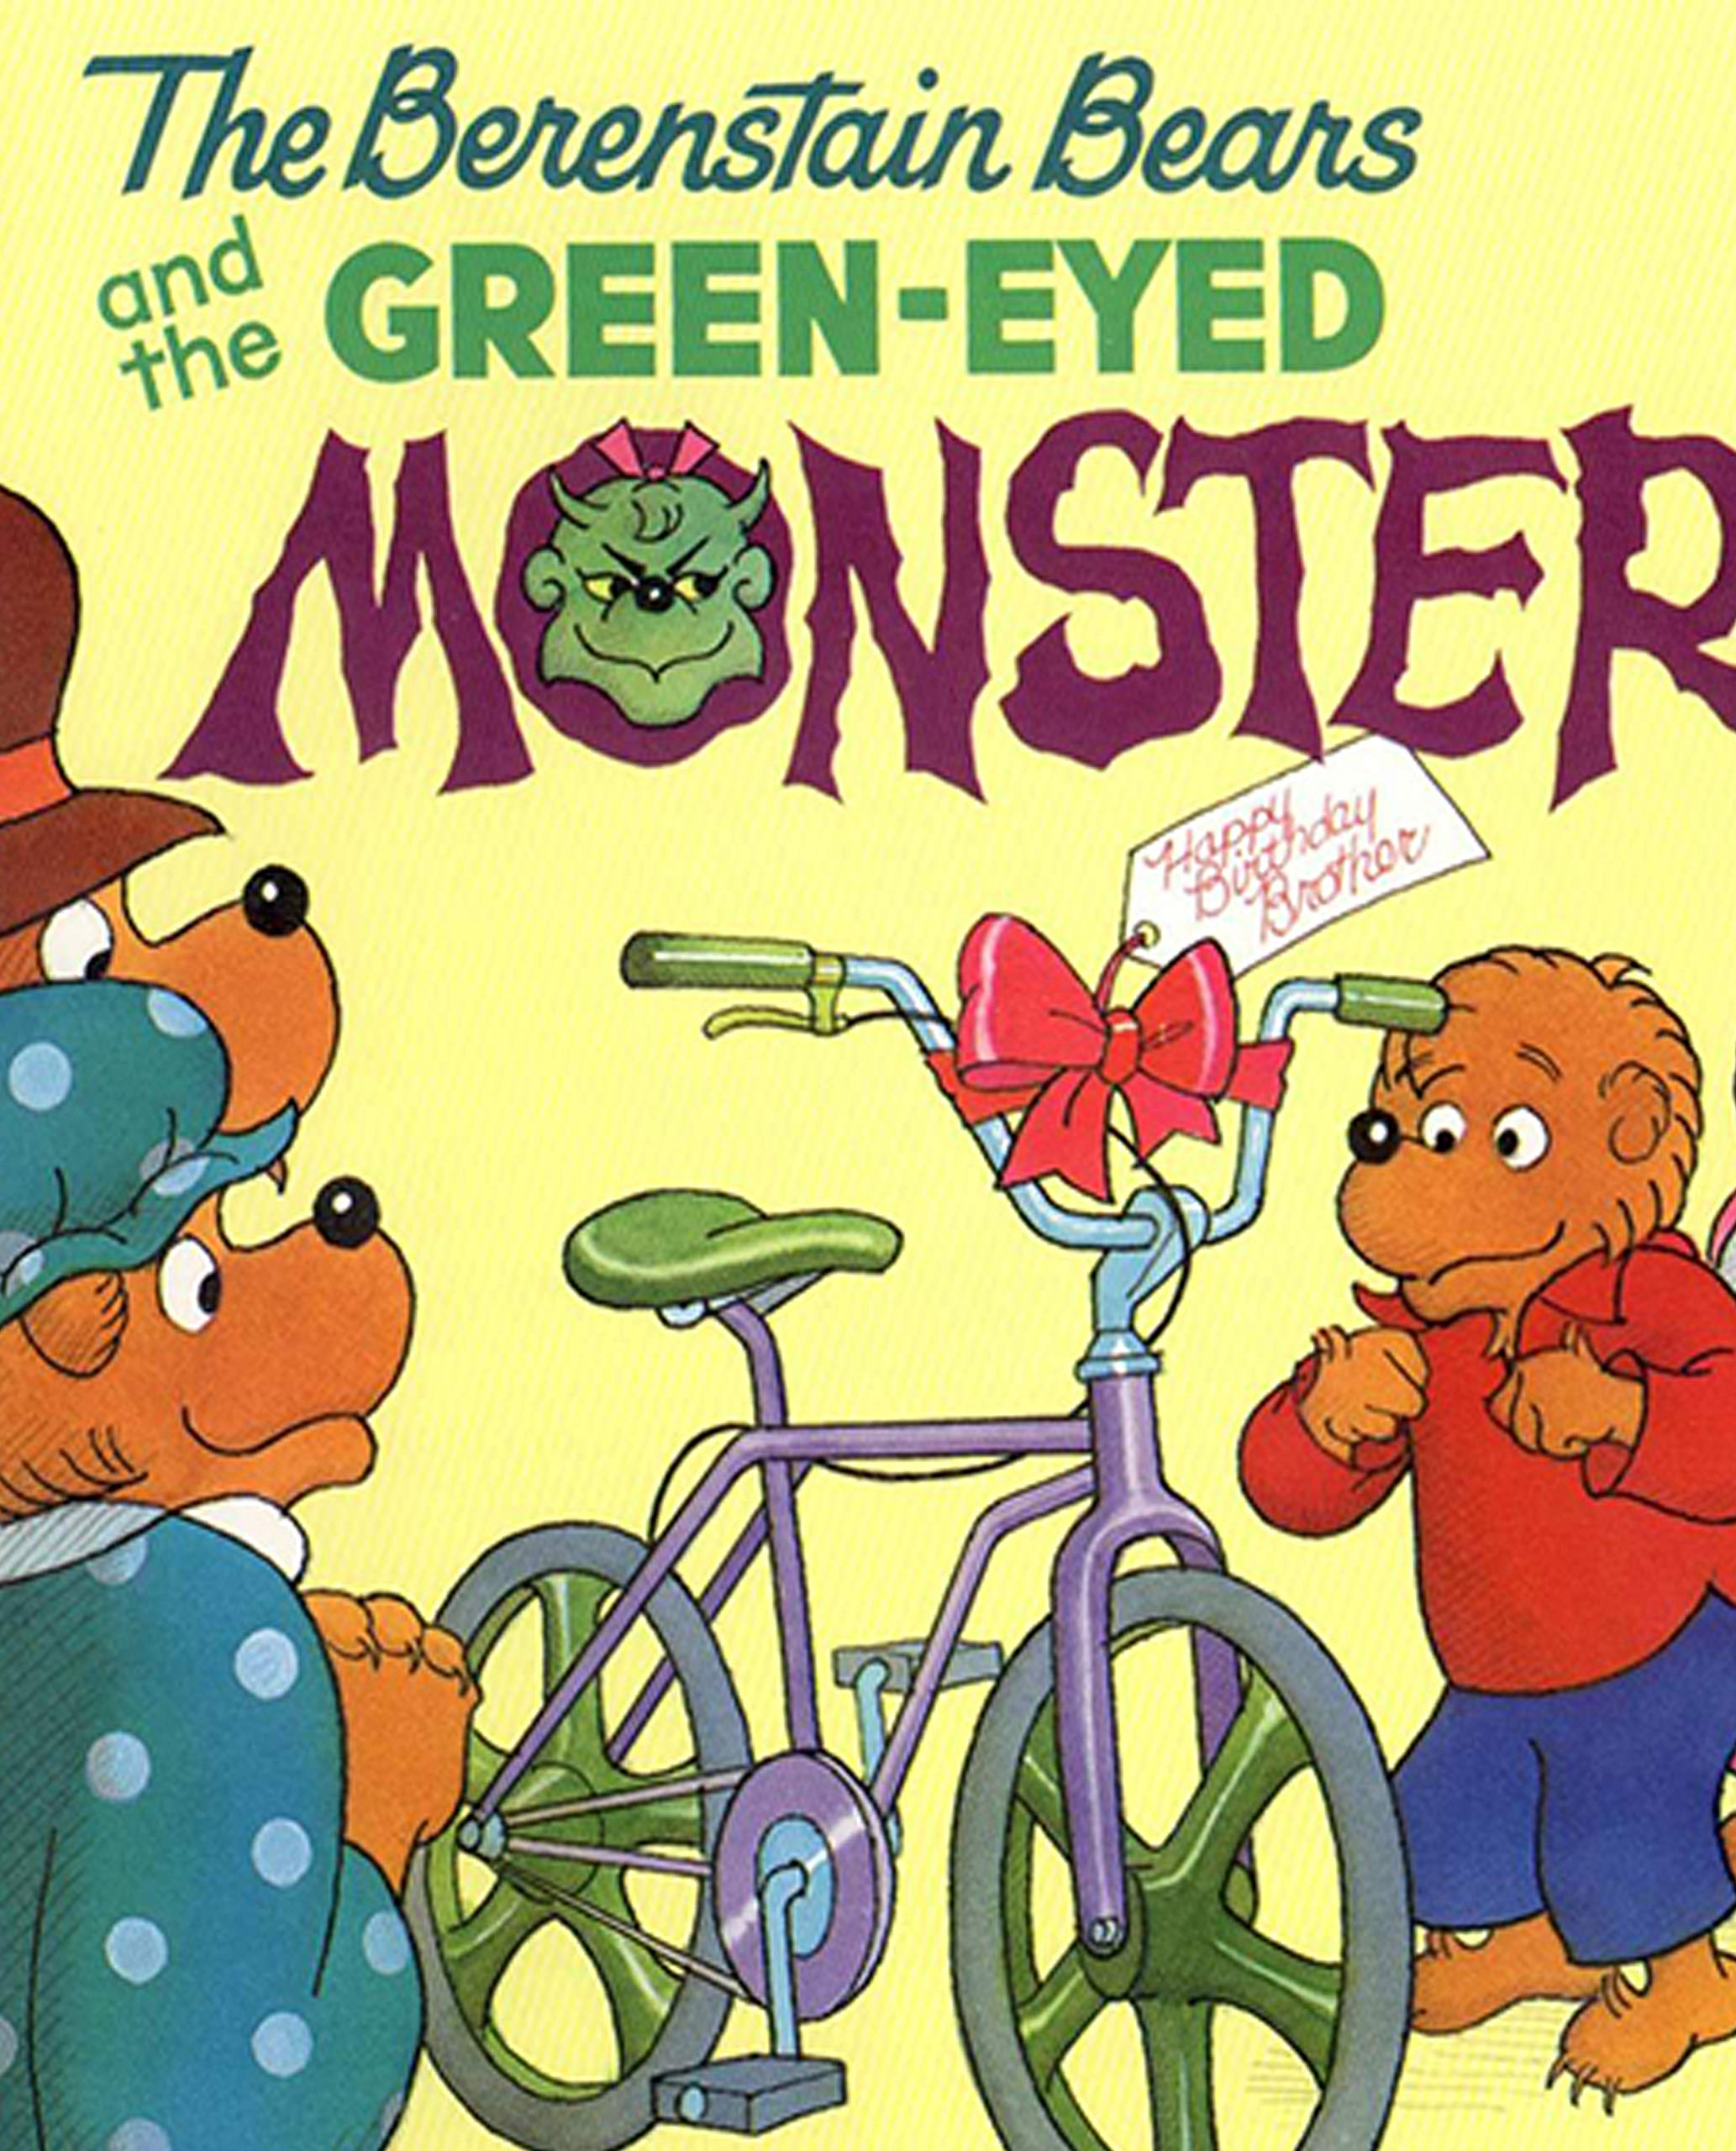 The Berenstain Bears and the Green Eyed Monster: Recommended for classic children's picture books